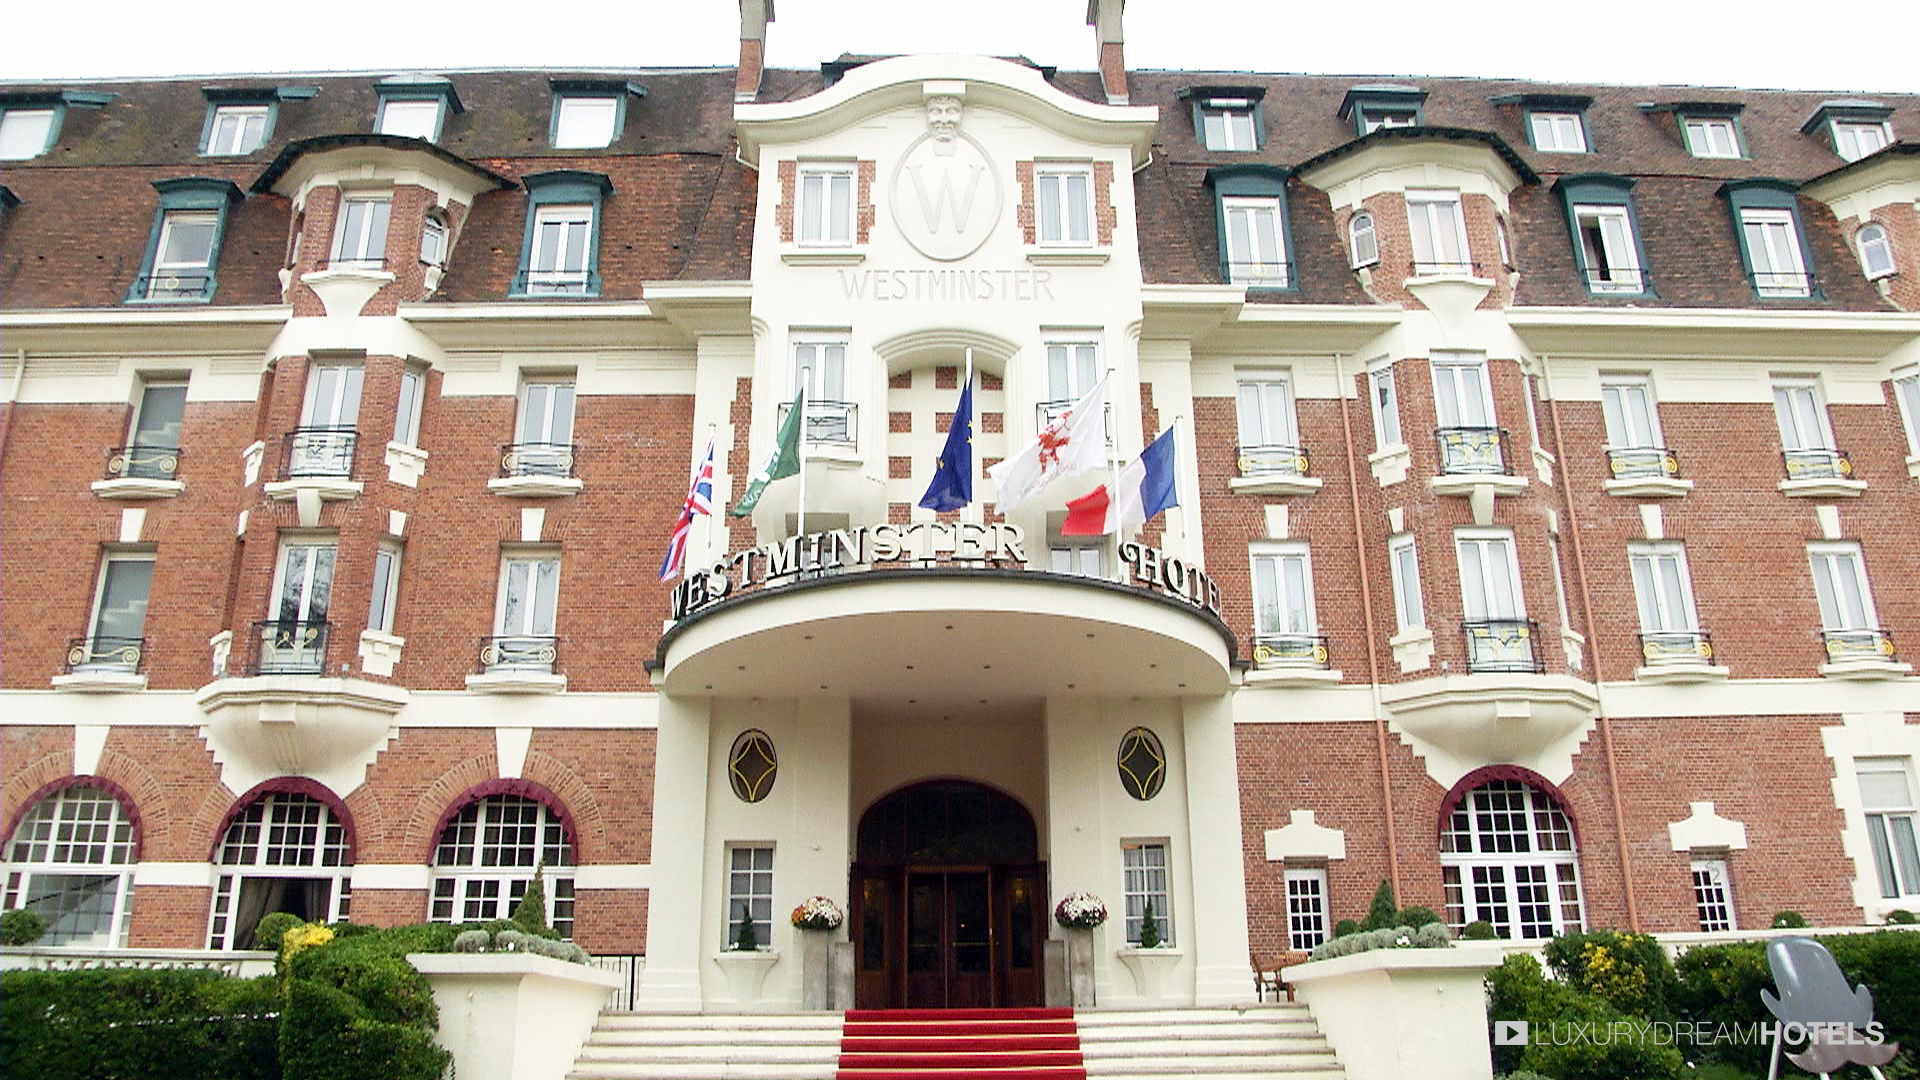 Luxury Hotel Westminster Spa Le Touquet France Dream Hotels